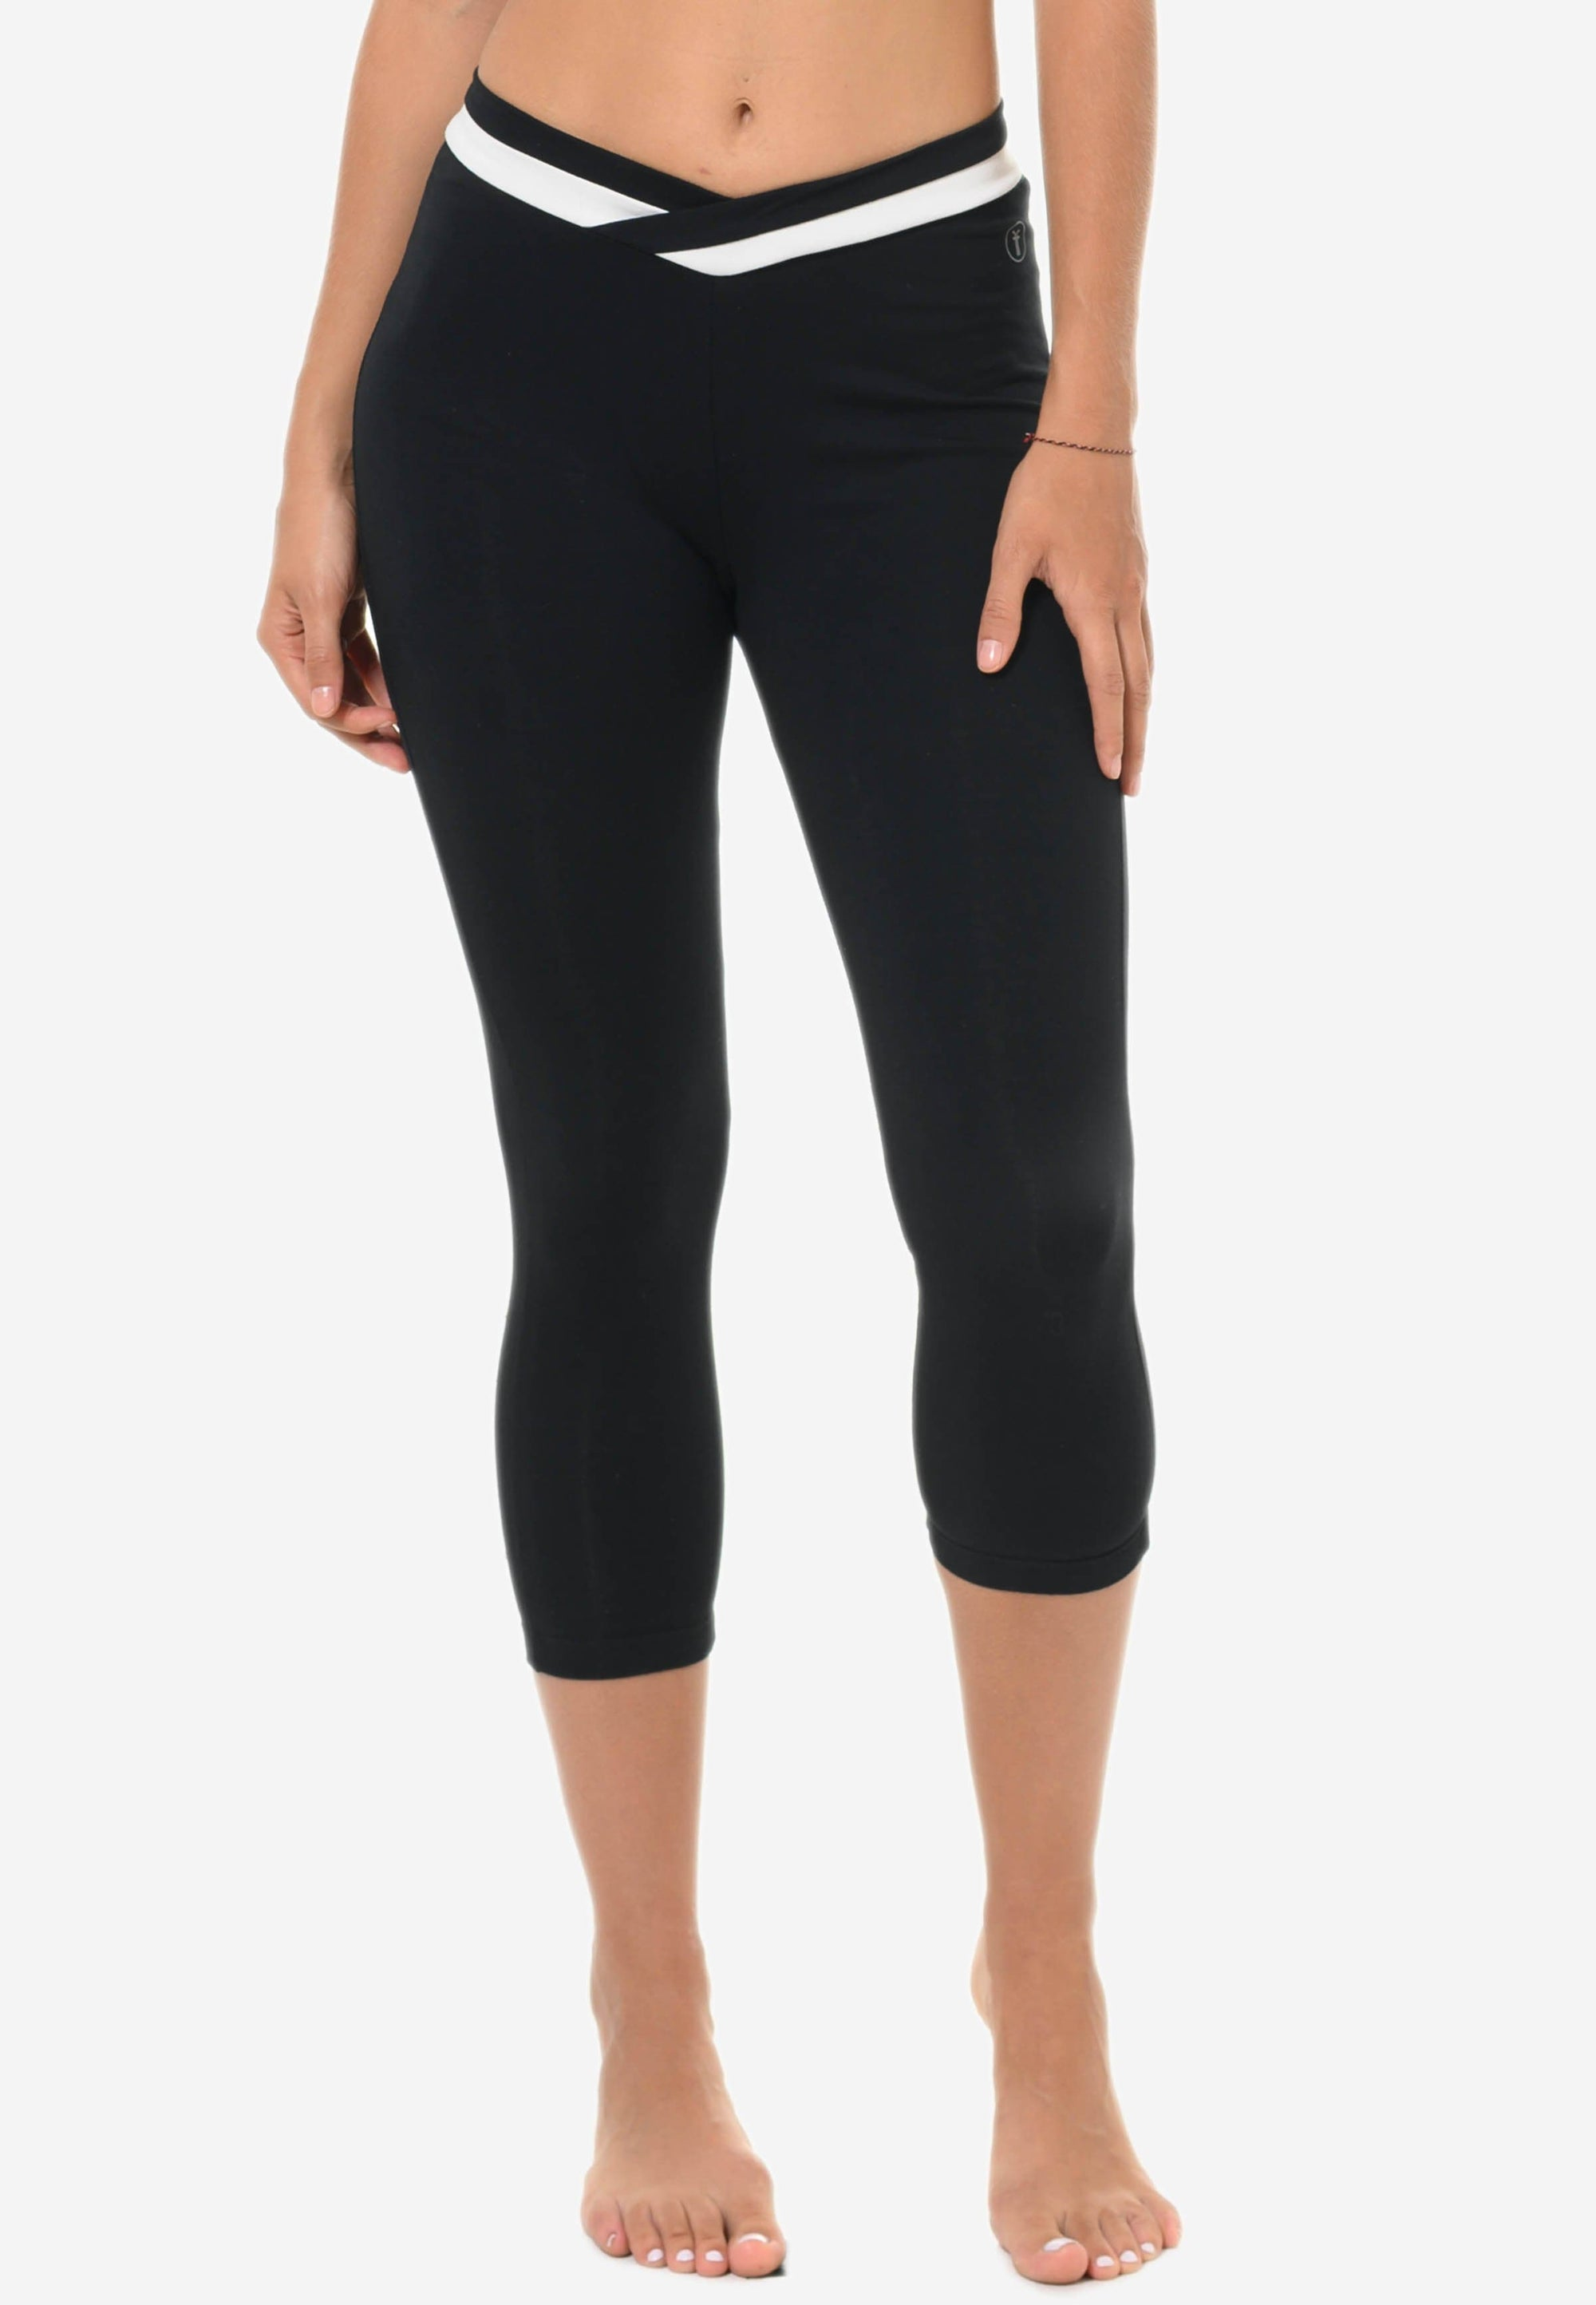 FUNFIT Capris with White Waistband in Black (S - 3XL)